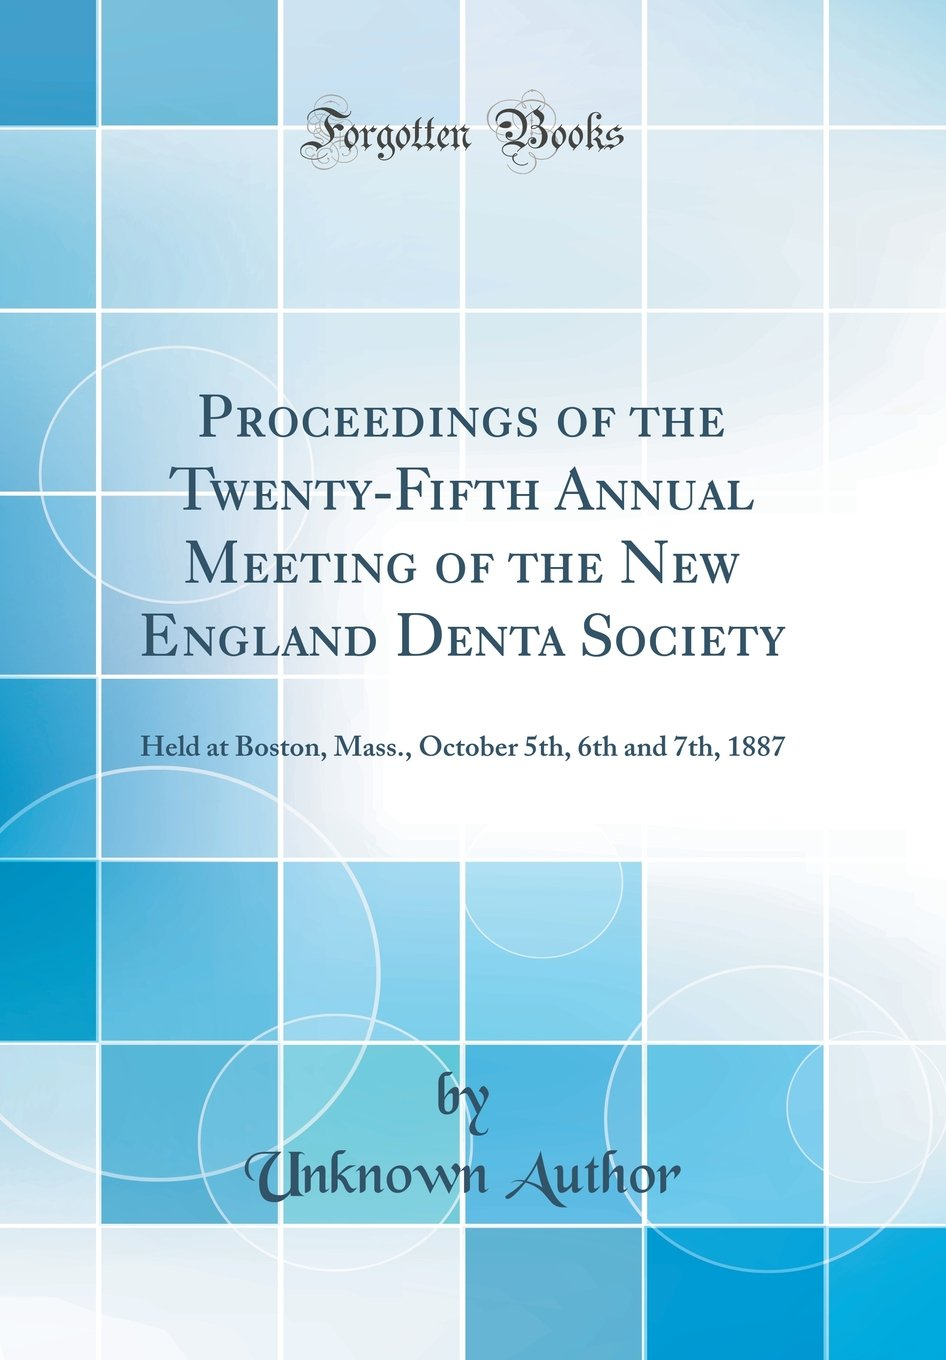 Download Proceedings of the Twenty-Fifth Annual Meeting of the New England Denta Society: Held at Boston, Mass., October 5th, 6th and 7th, 1887 (Classic Reprint) PDF